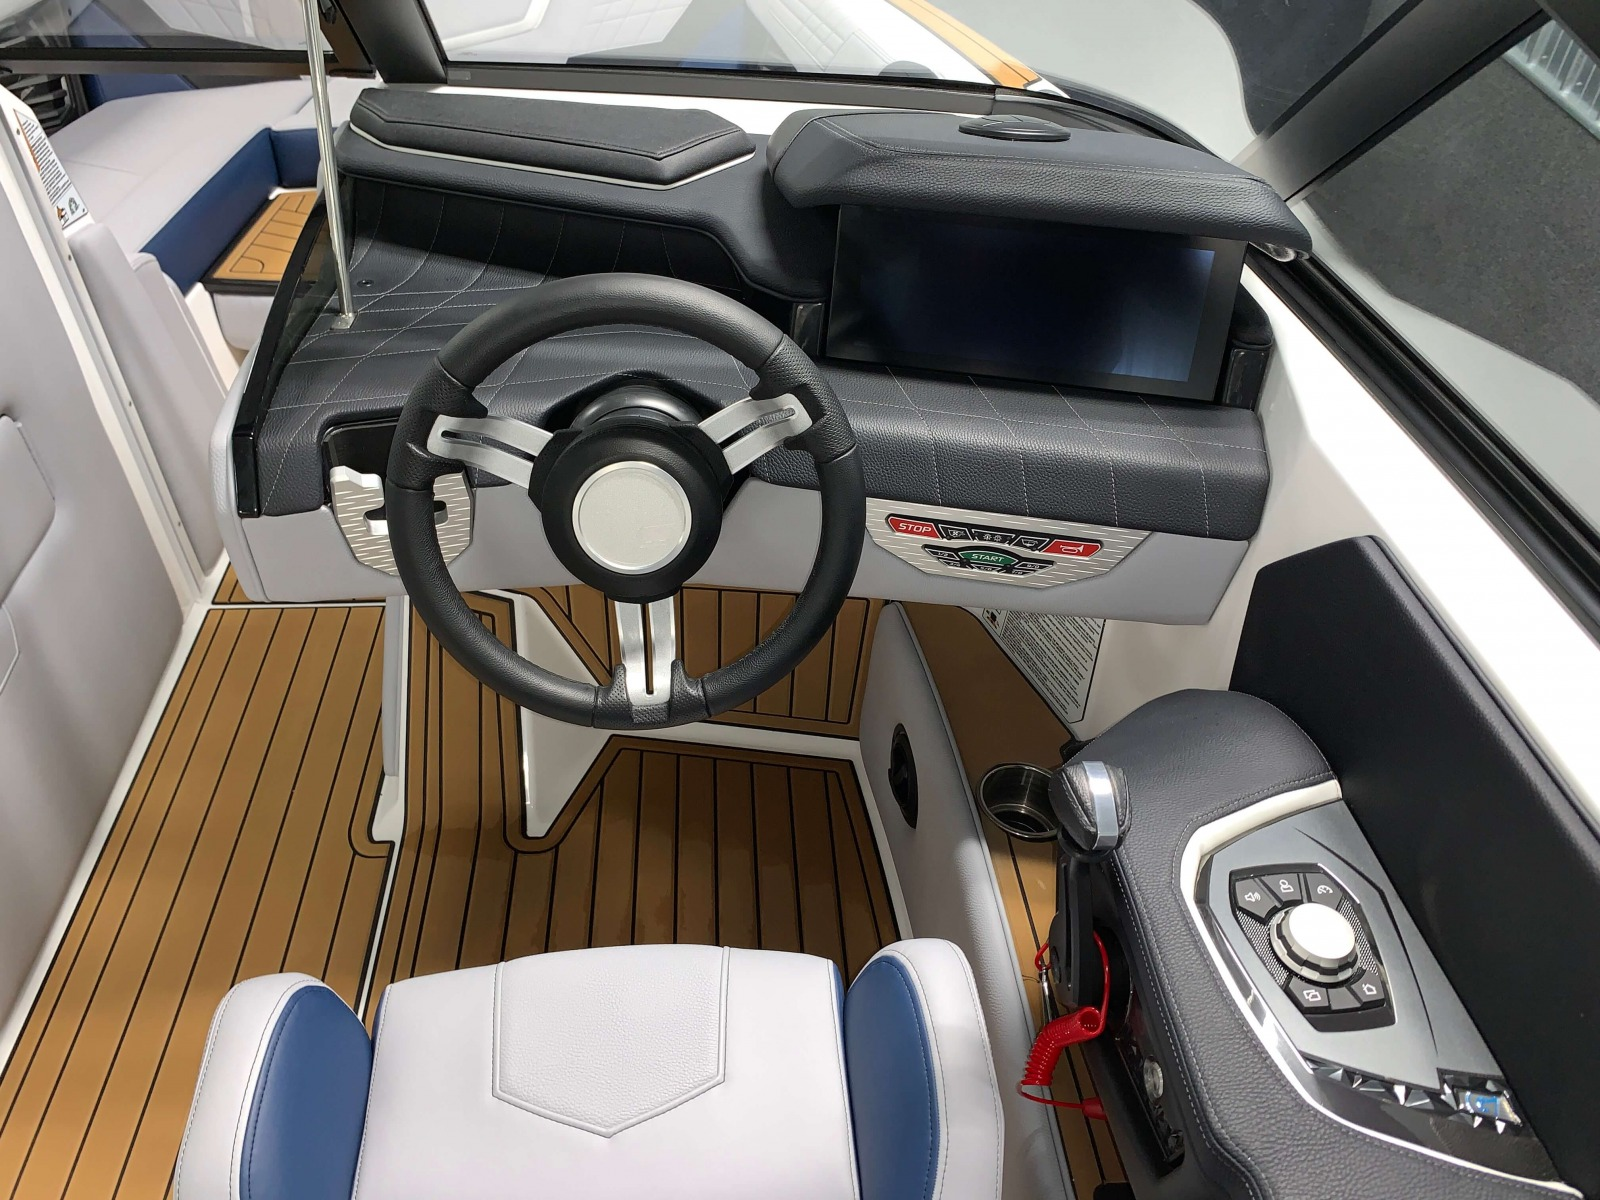 Helm of the 2021 Nautique G23 Wake Boat